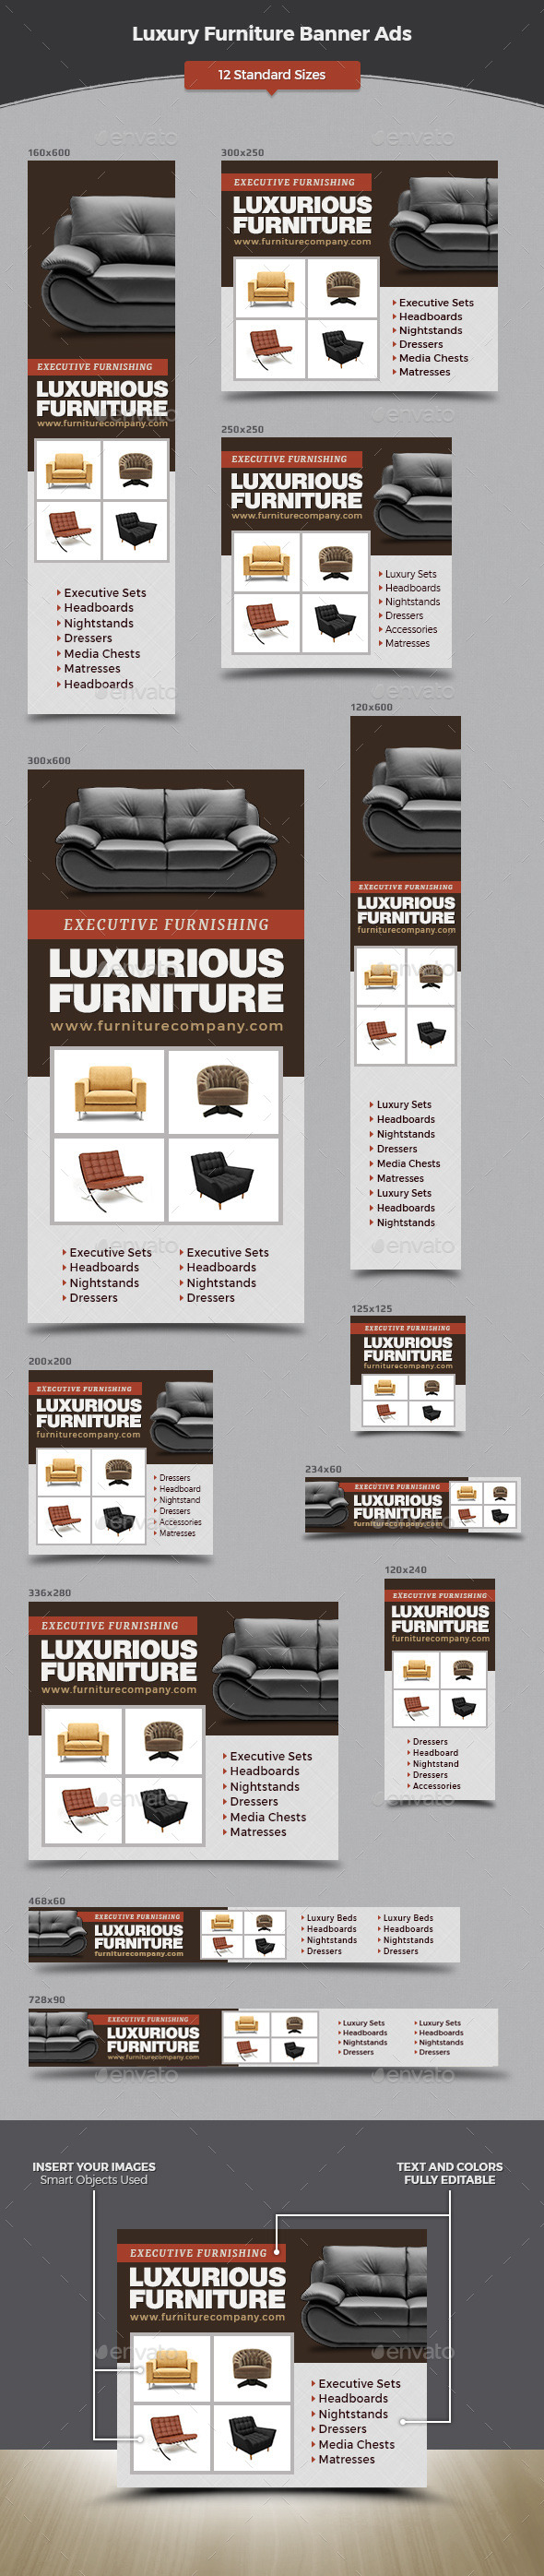 Luxury Furniture Banner Ads Set - Banners & Ads Web Elements